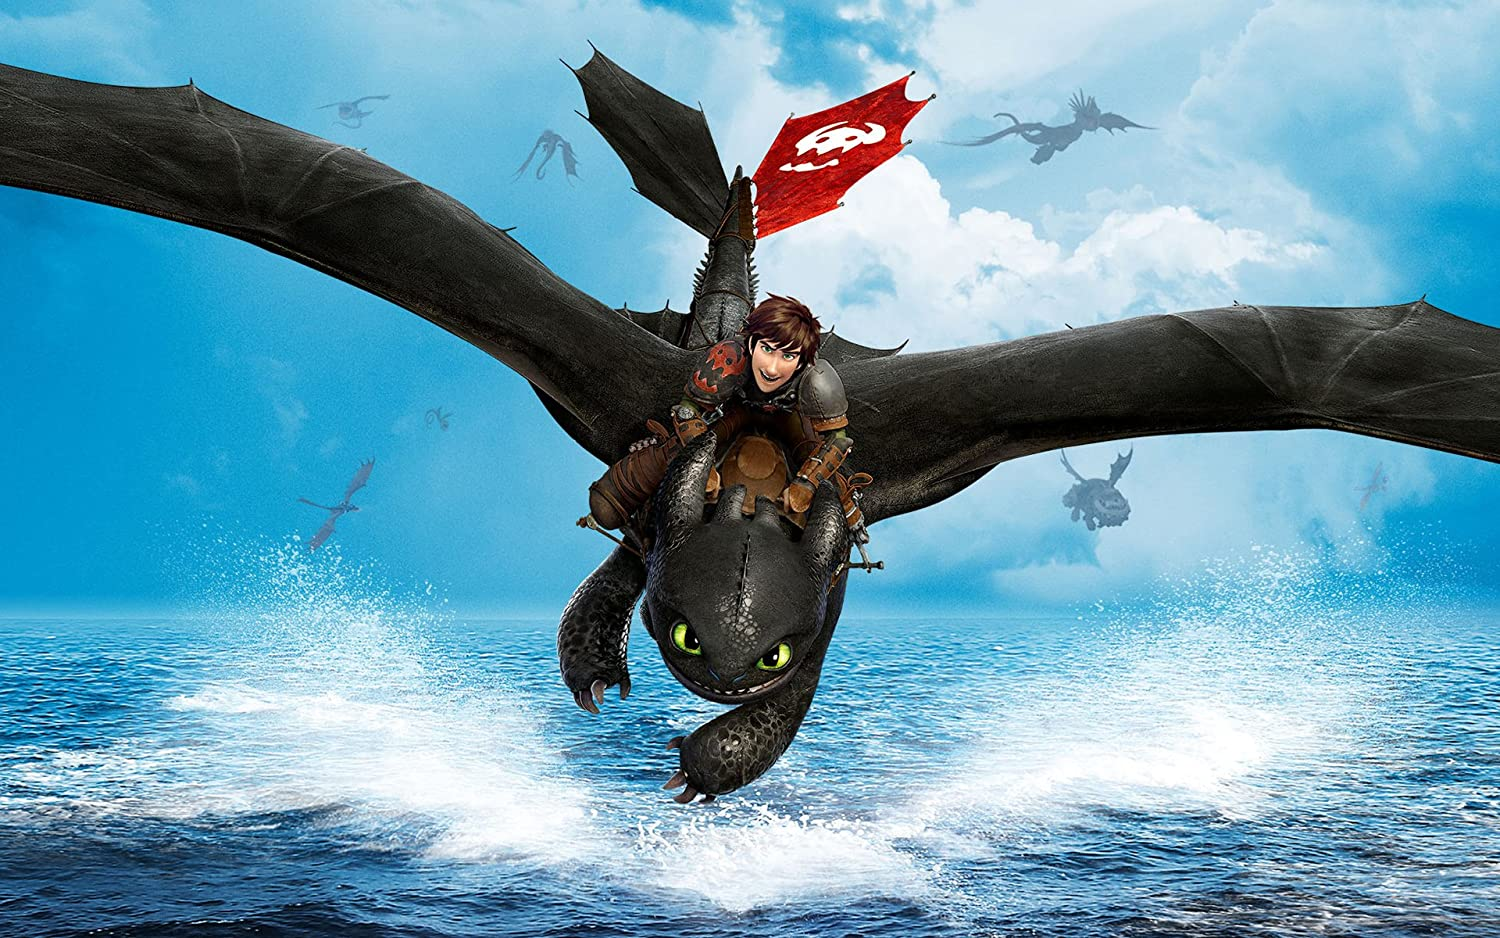 Posterhouzz Movie How To Train Your Dragon 2 Hiccup Toothless Hd